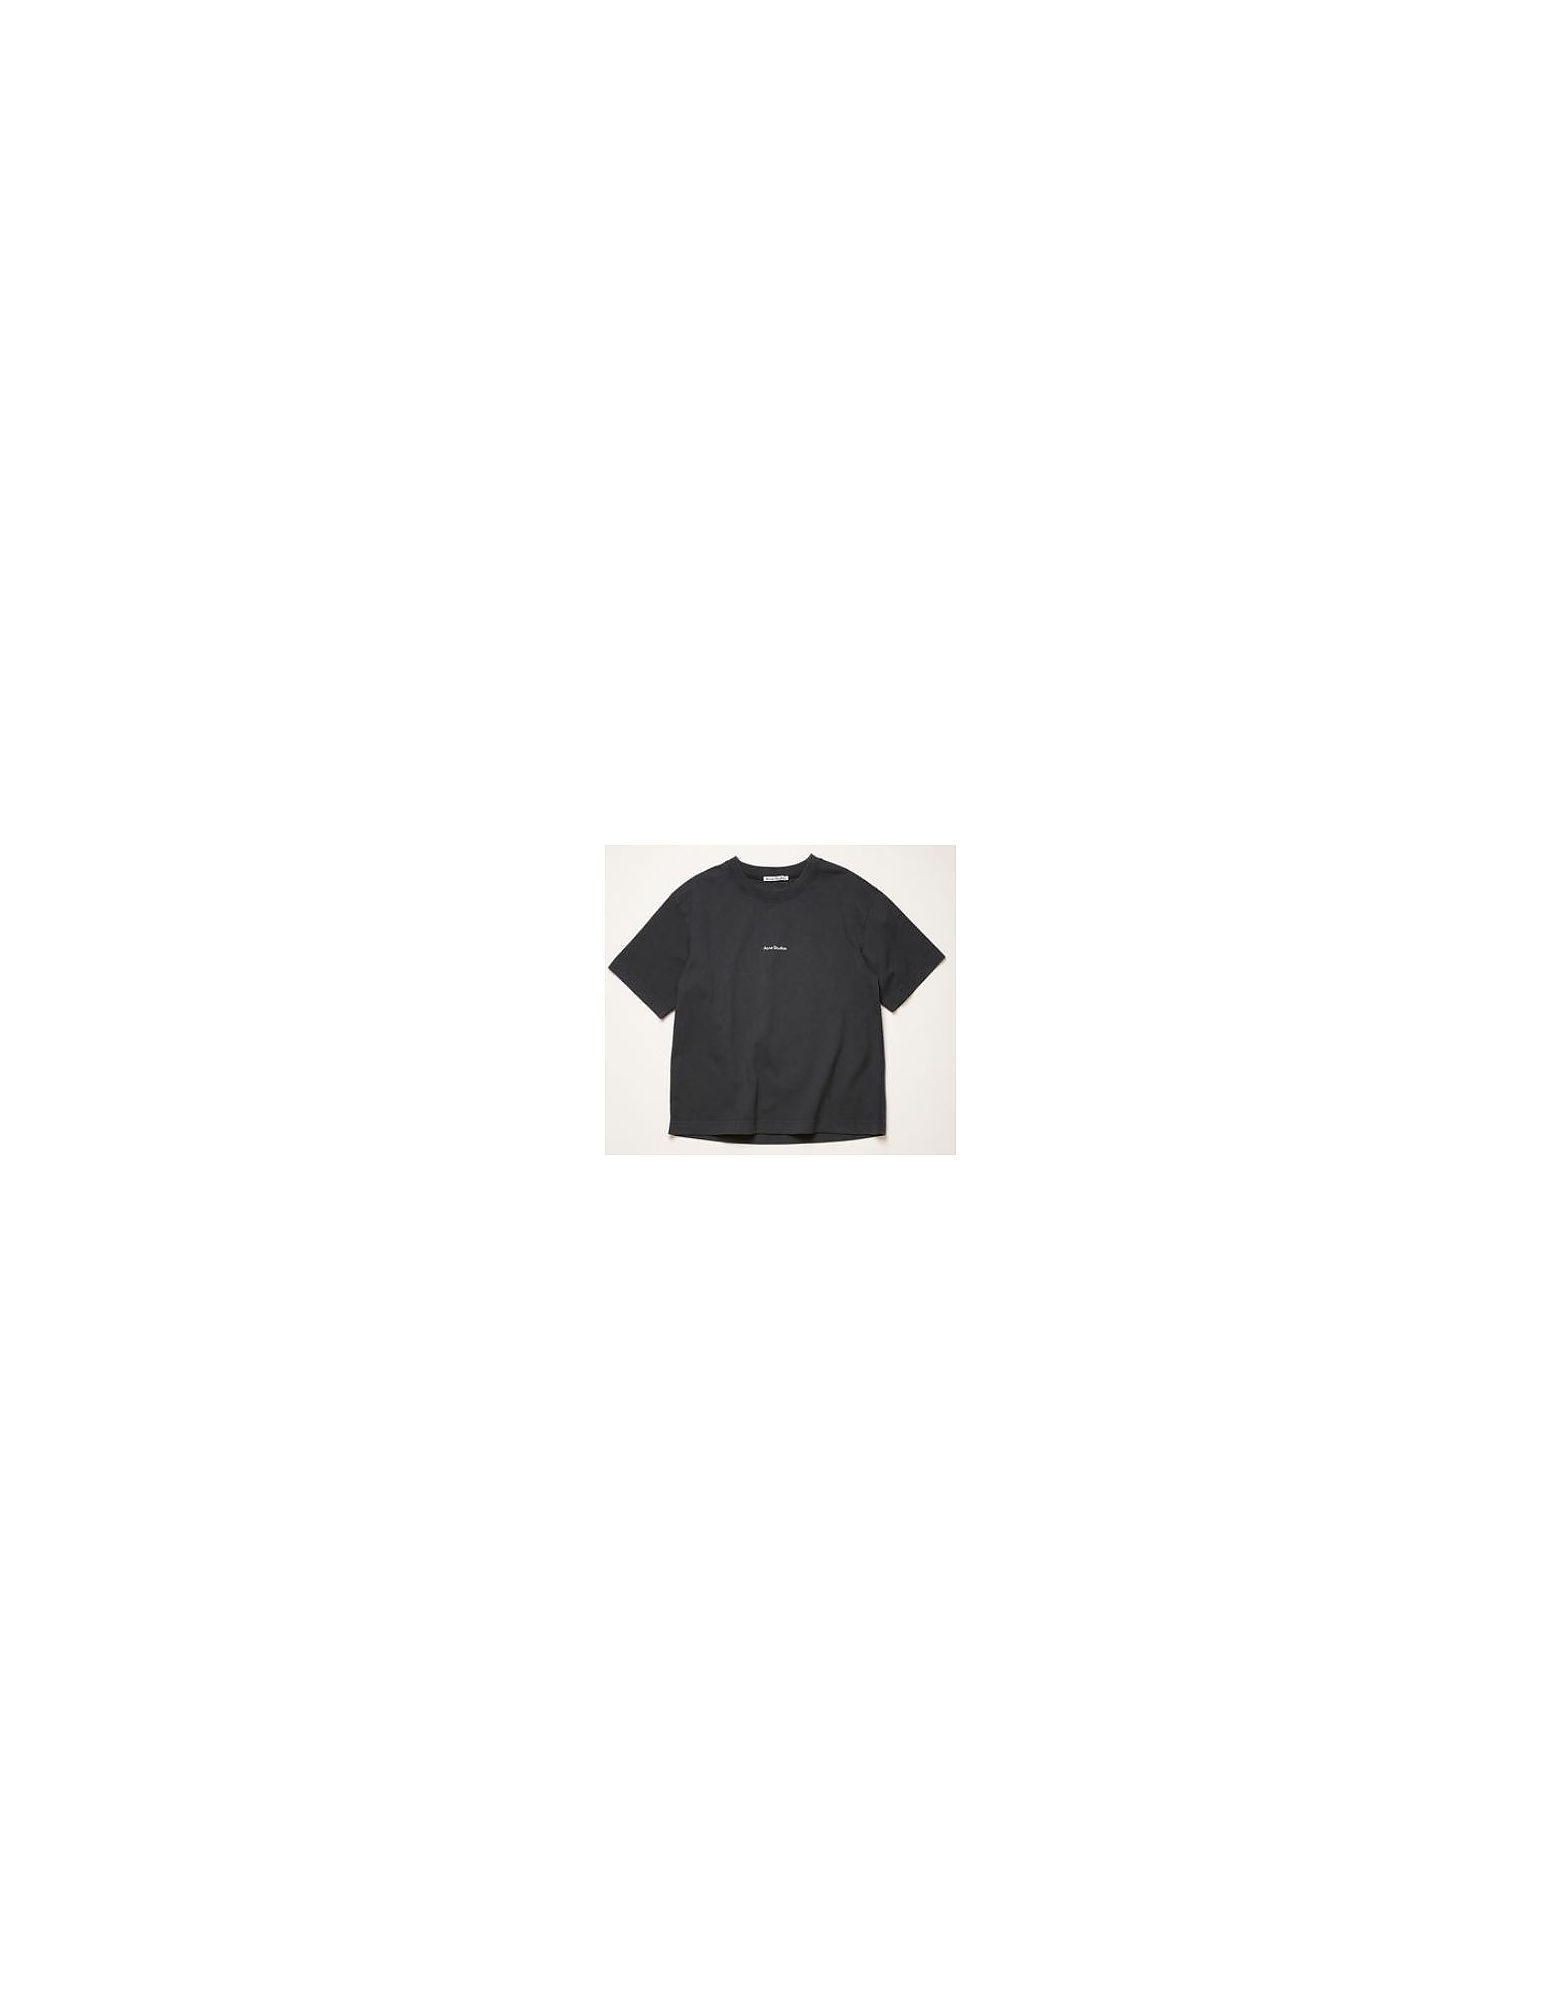 Acne Studios Designer T-Shirts & Tops, Women's T-Shirt